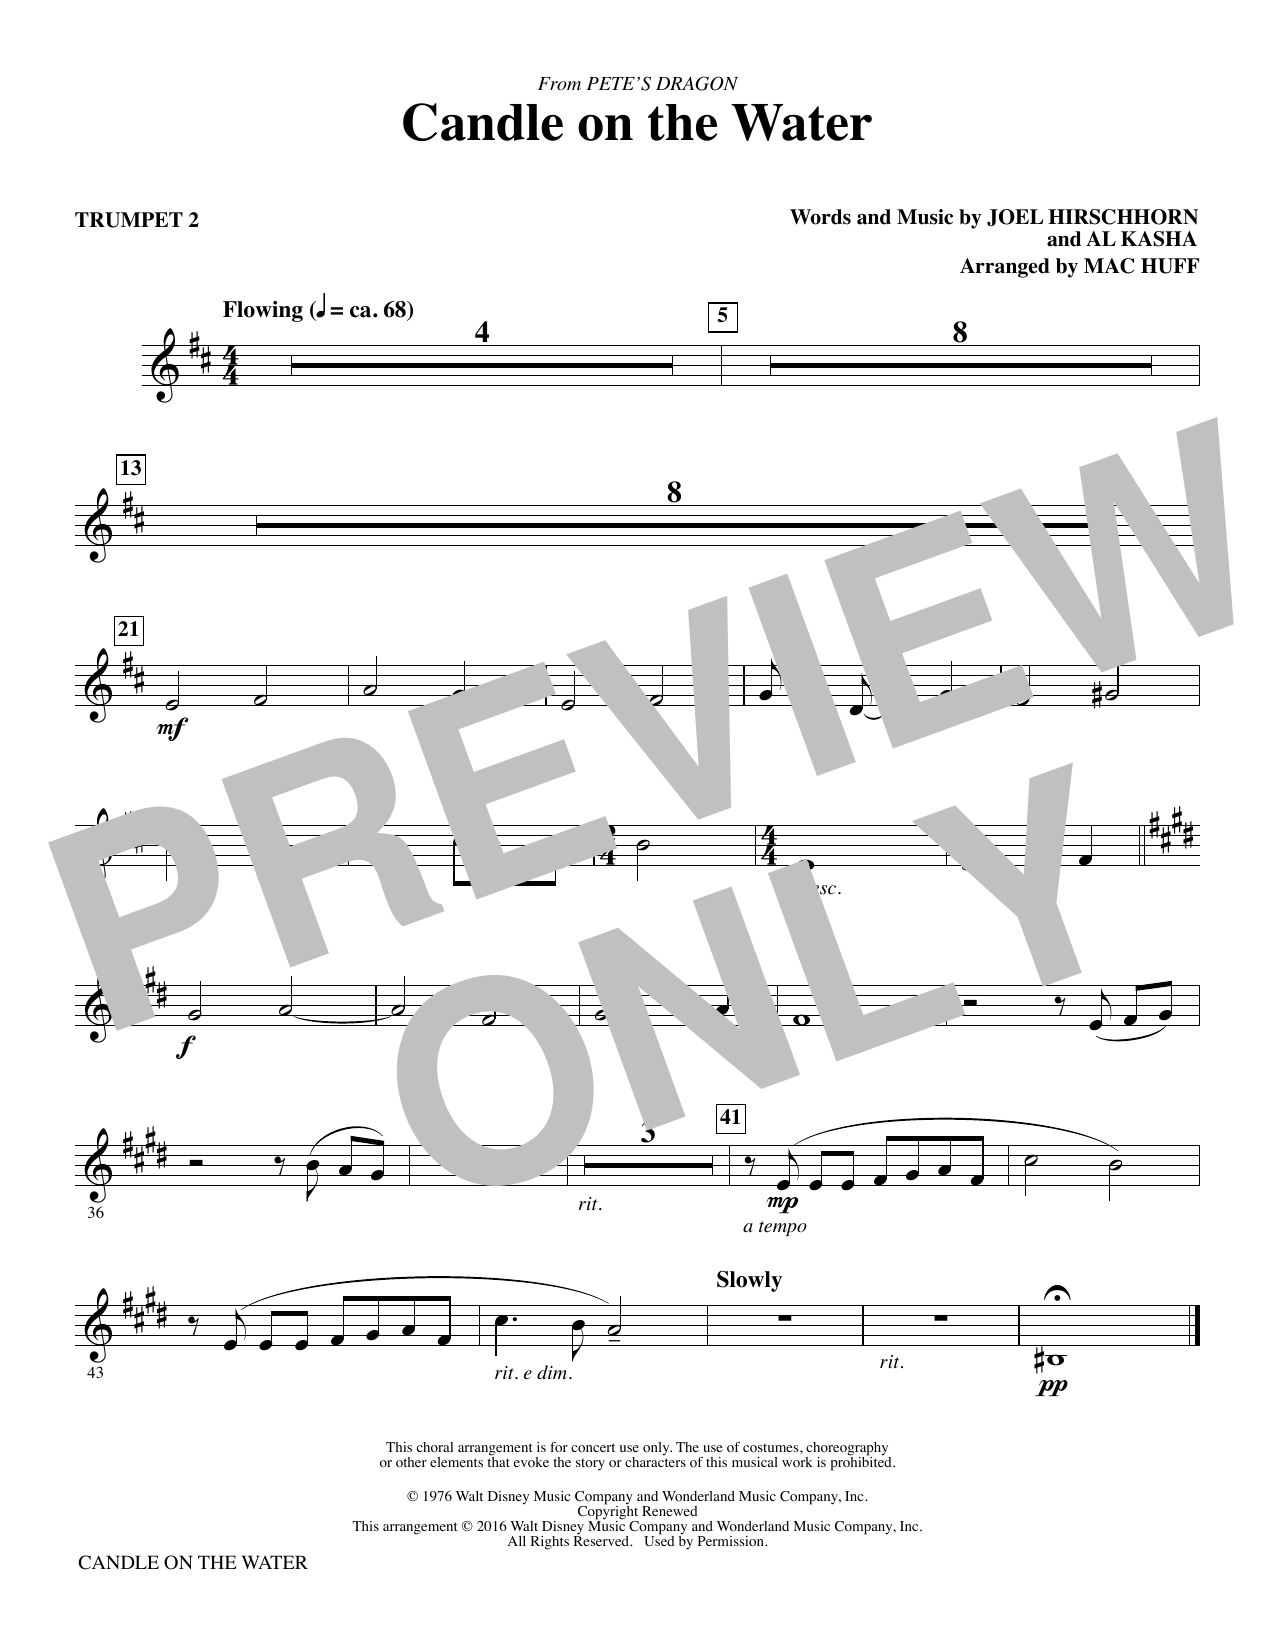 Candle on the Water - Trumpet 2 Sheet Music